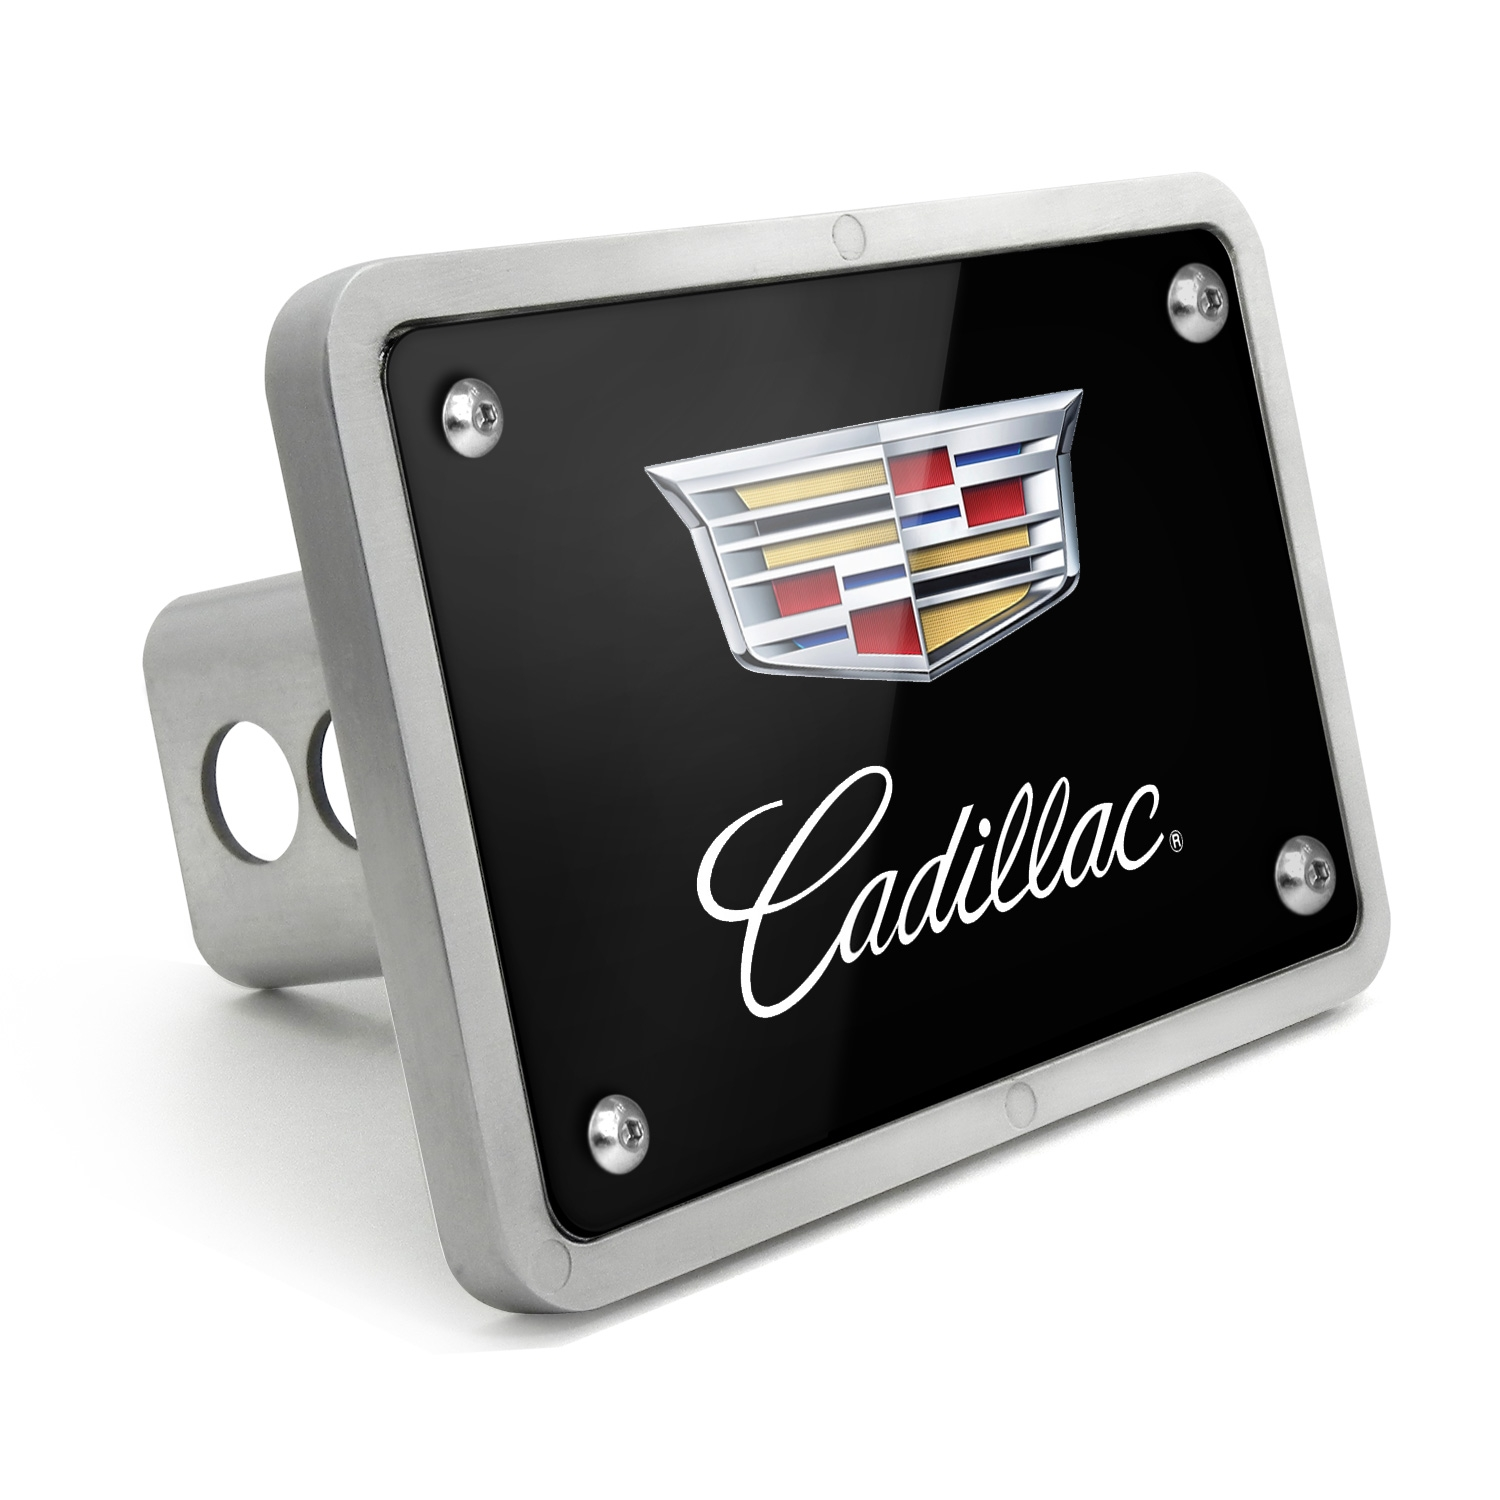 Cadillac Logo 2015 UV Graphic Black Billet Aluminum 2 inch Tow Hitch Cover